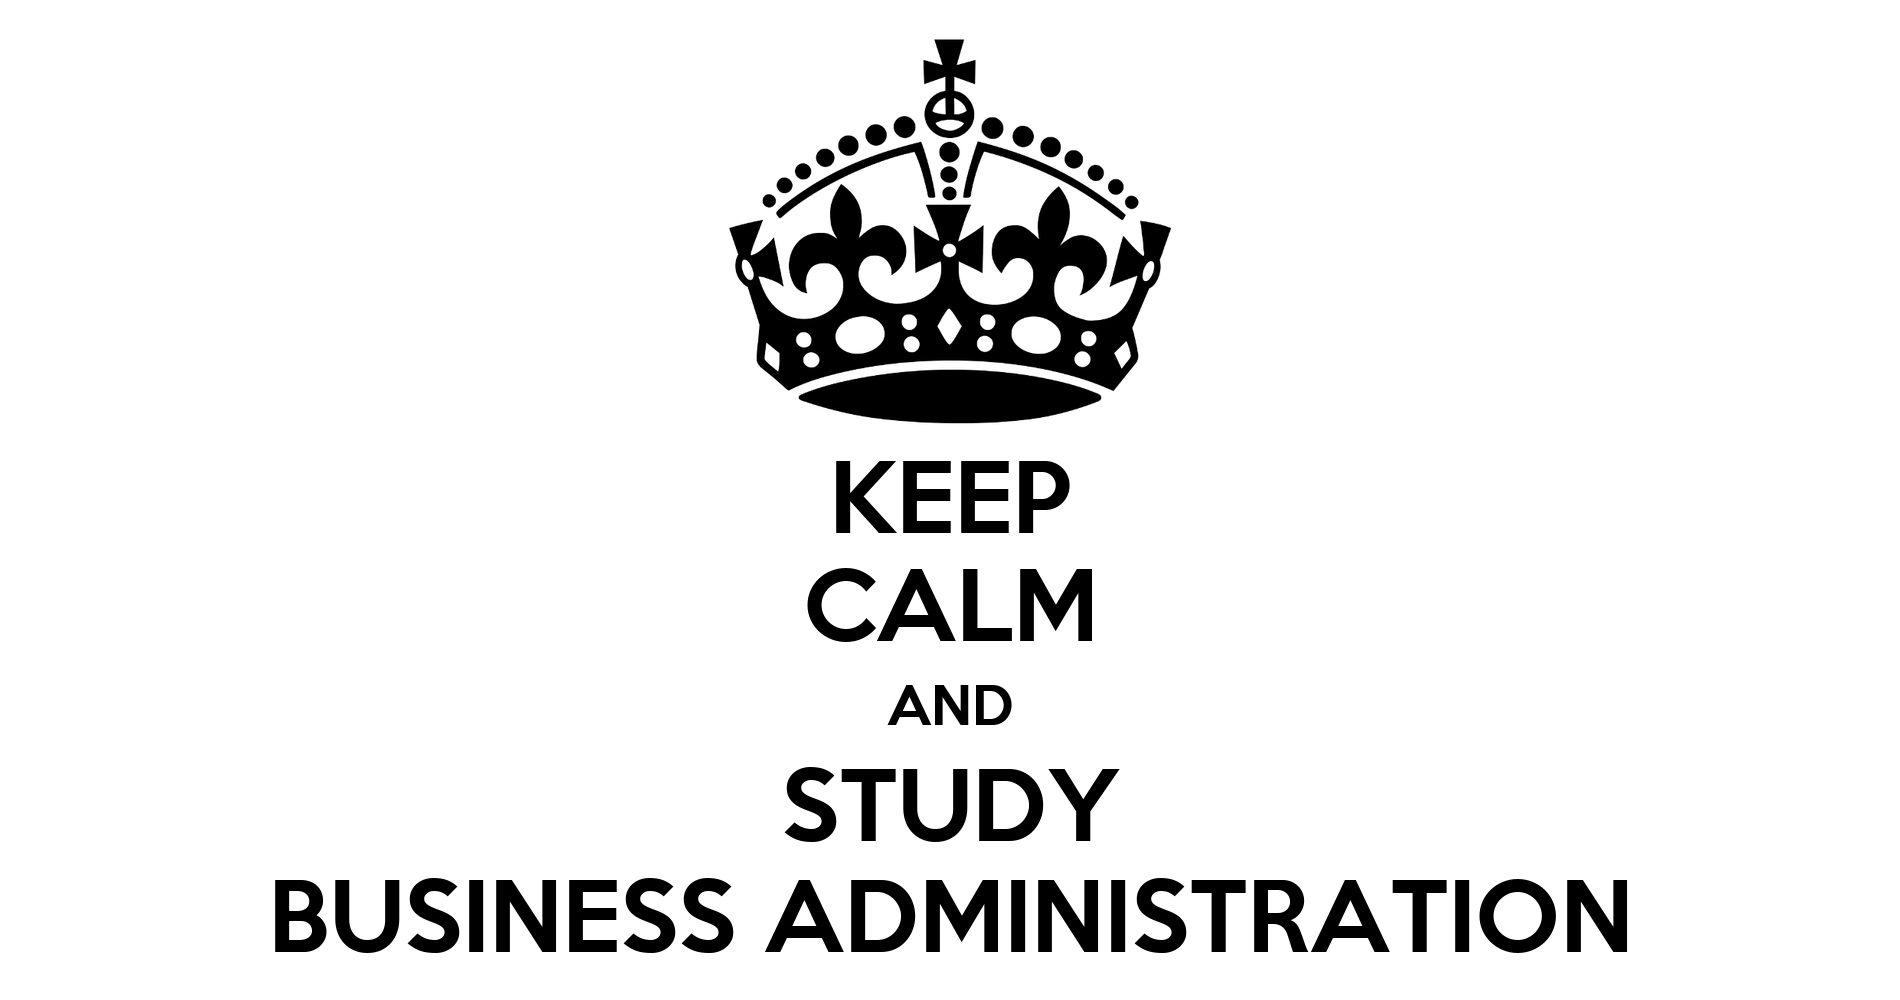 Why Study Business Administration?